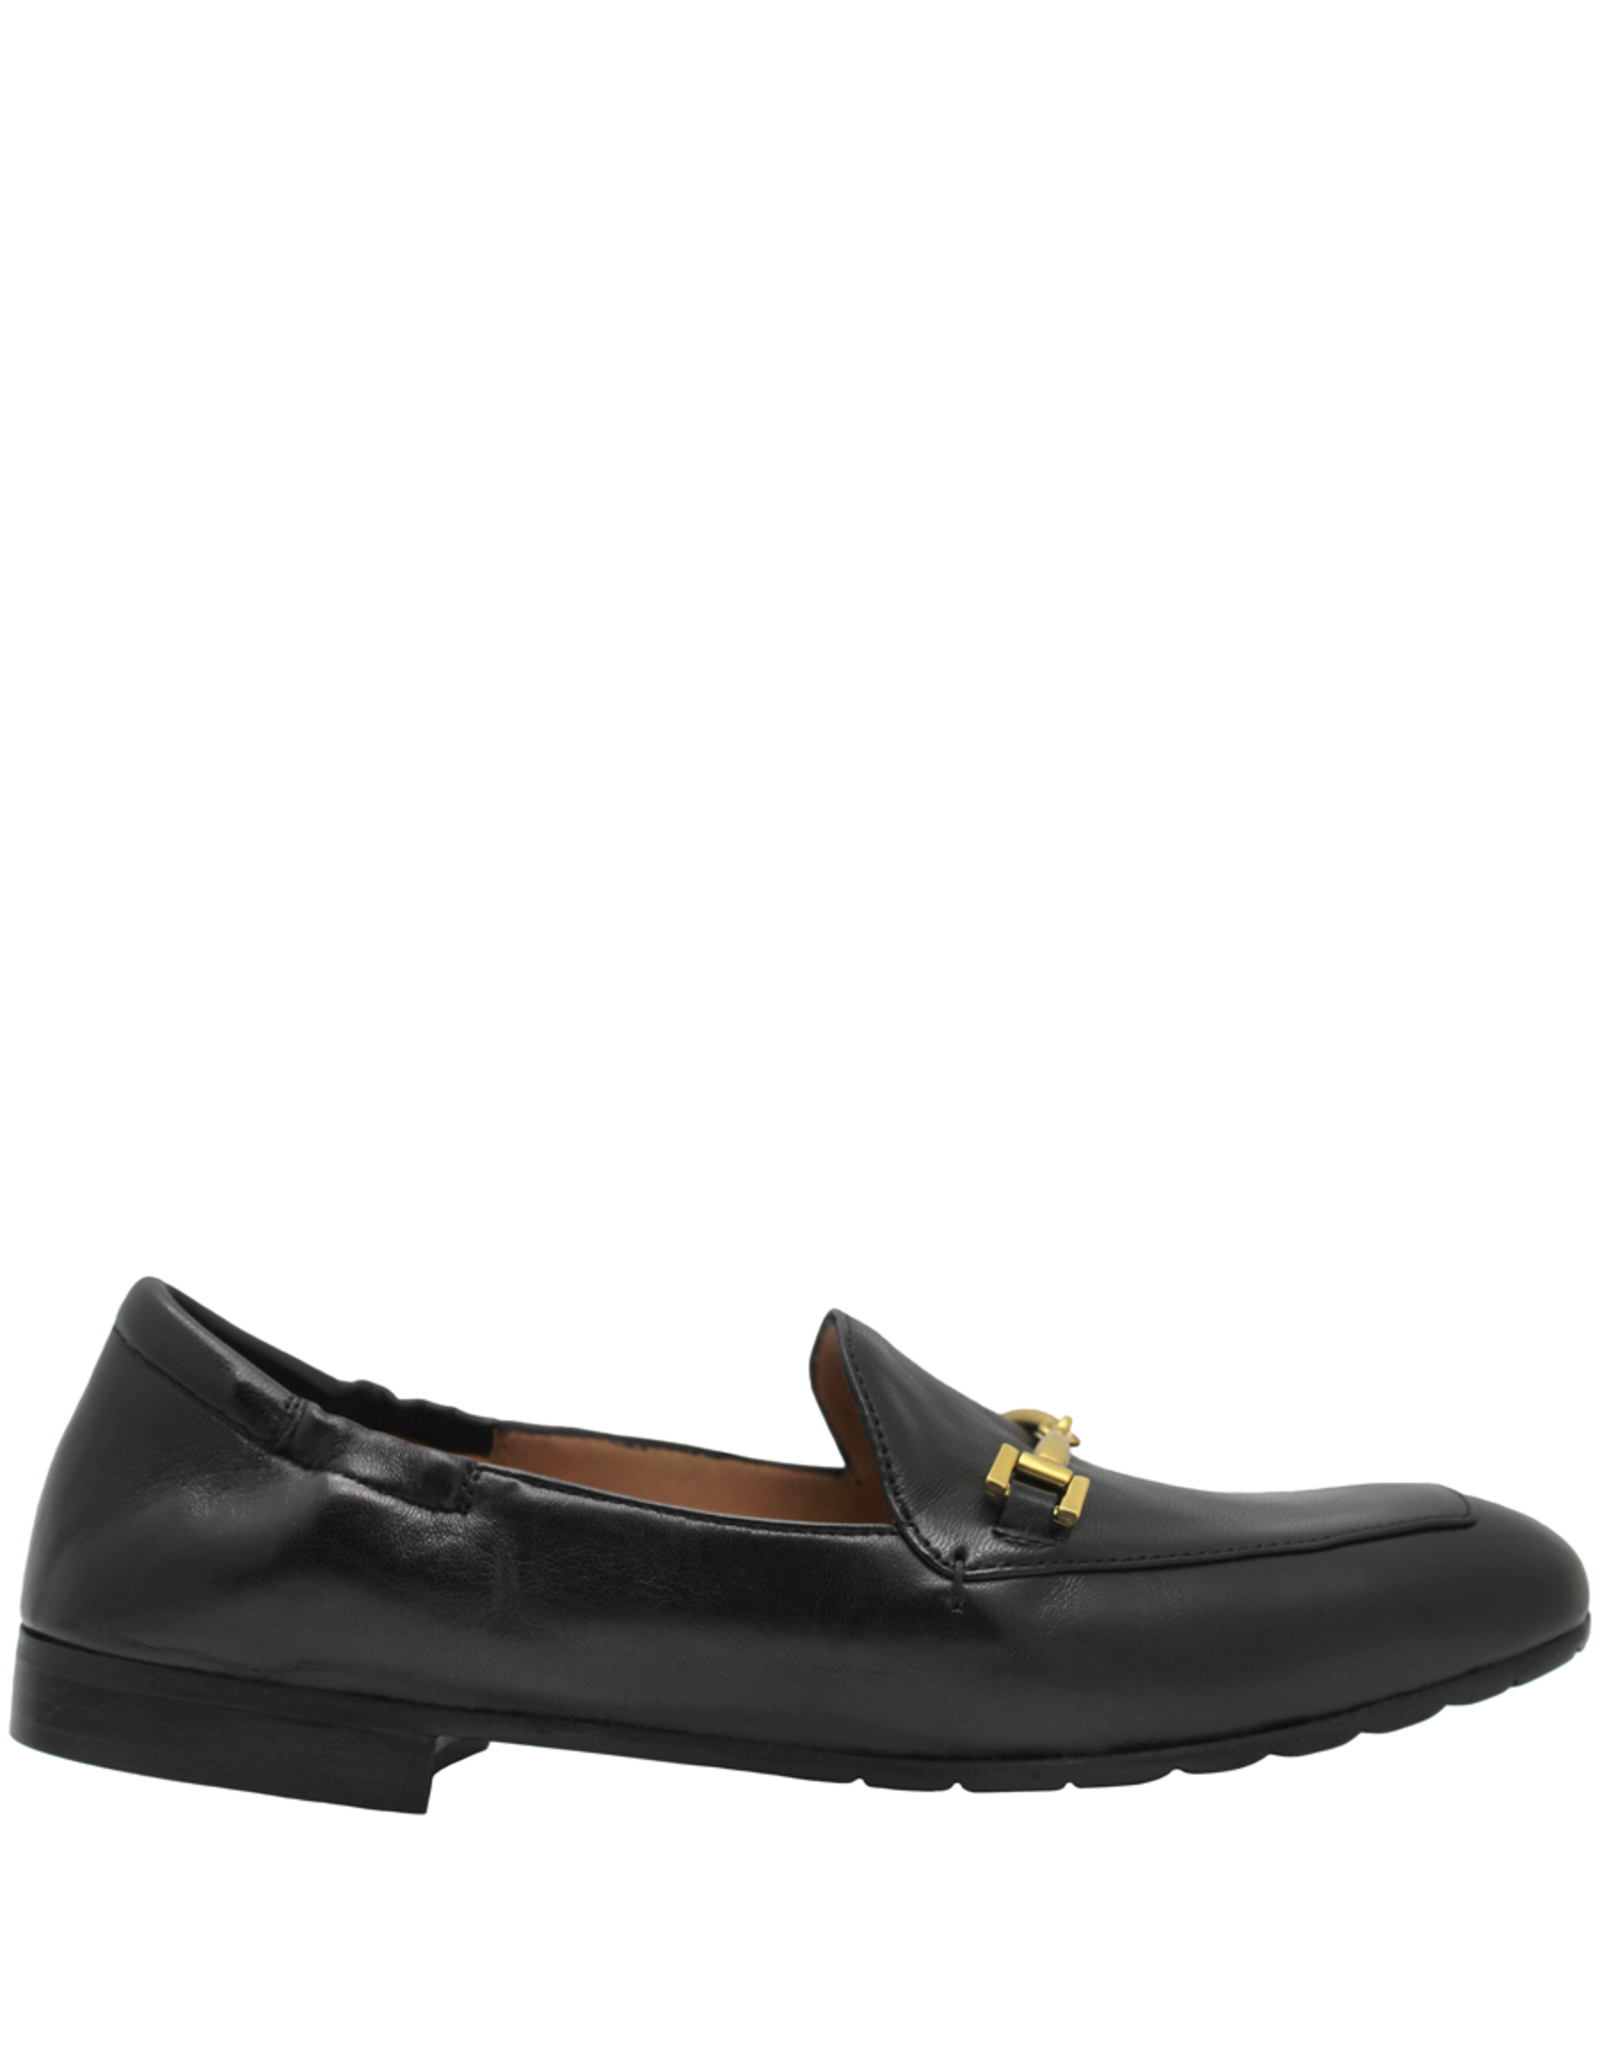 MaraBini Black Loafer 7410